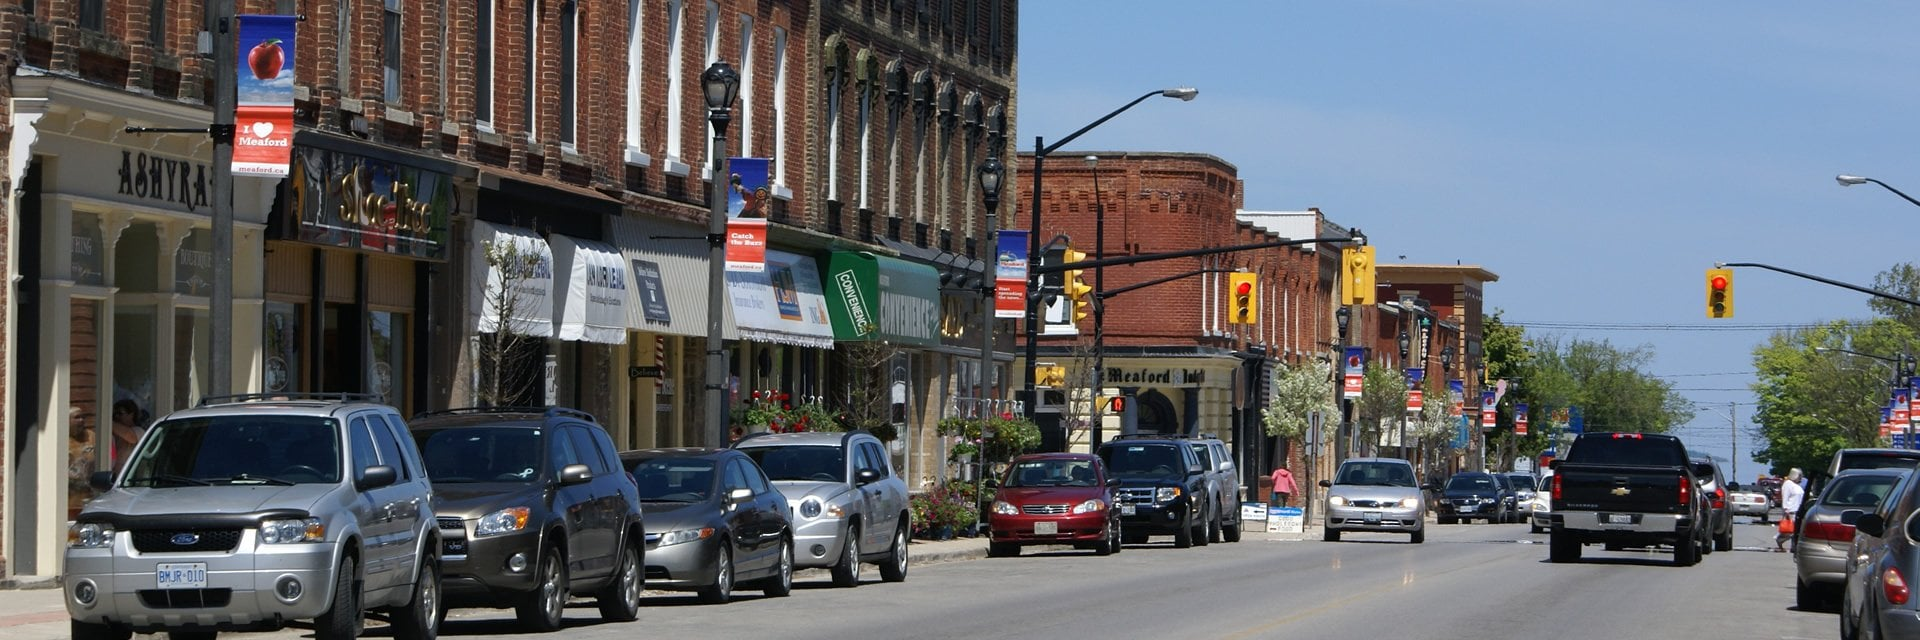 Meaford Ontario Real Estate Amp Community Guide Locations